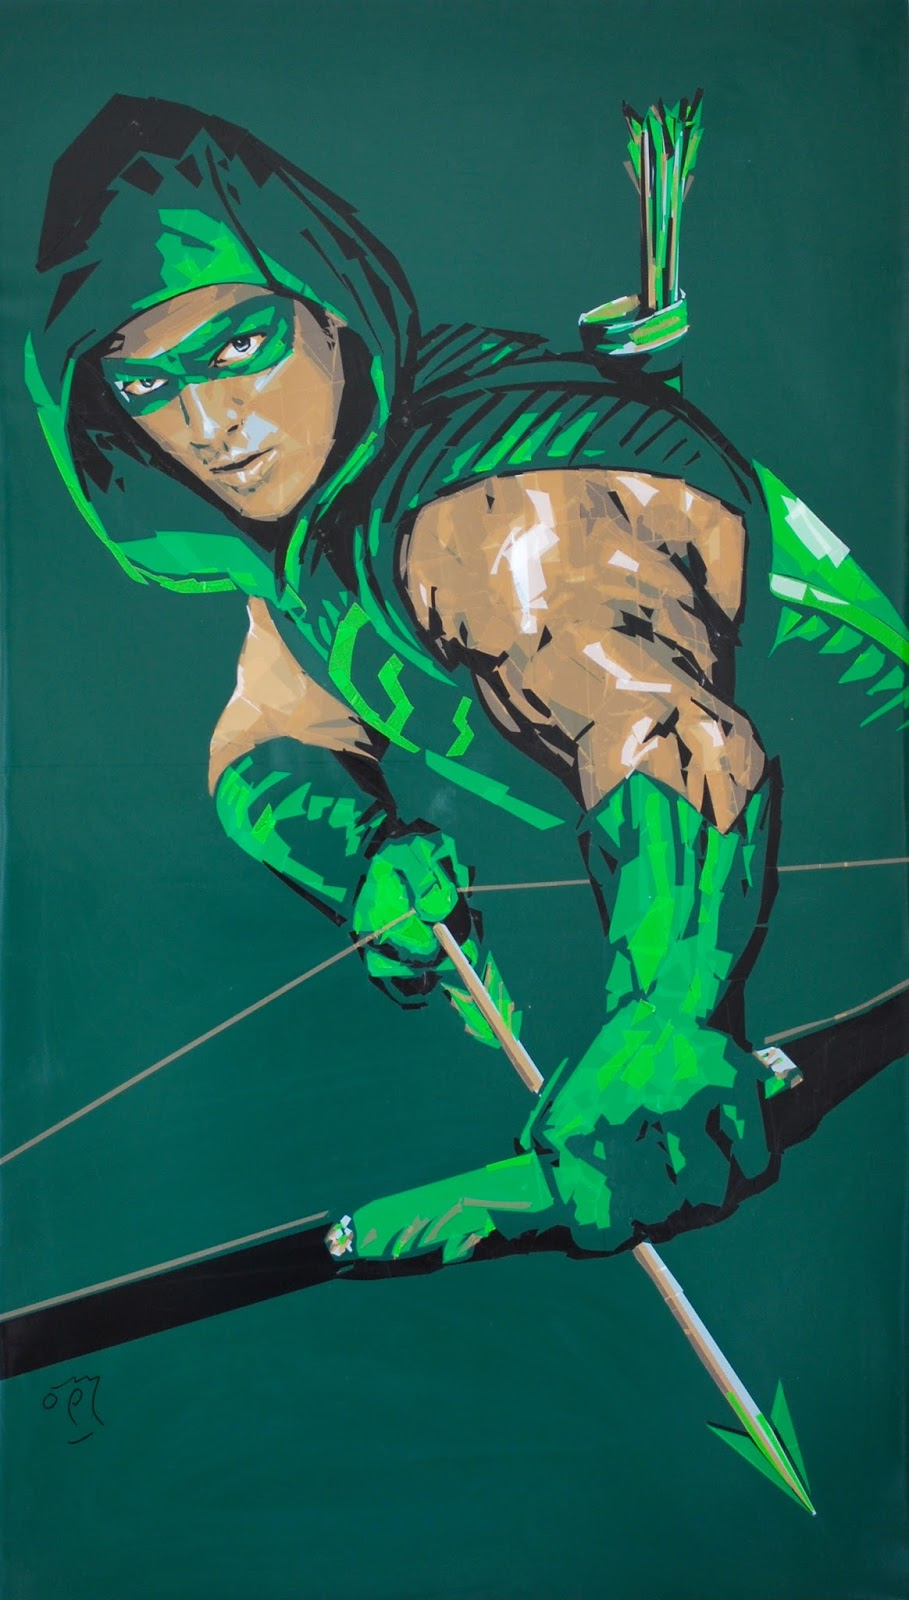 Green packaging tape portrait of Arrow